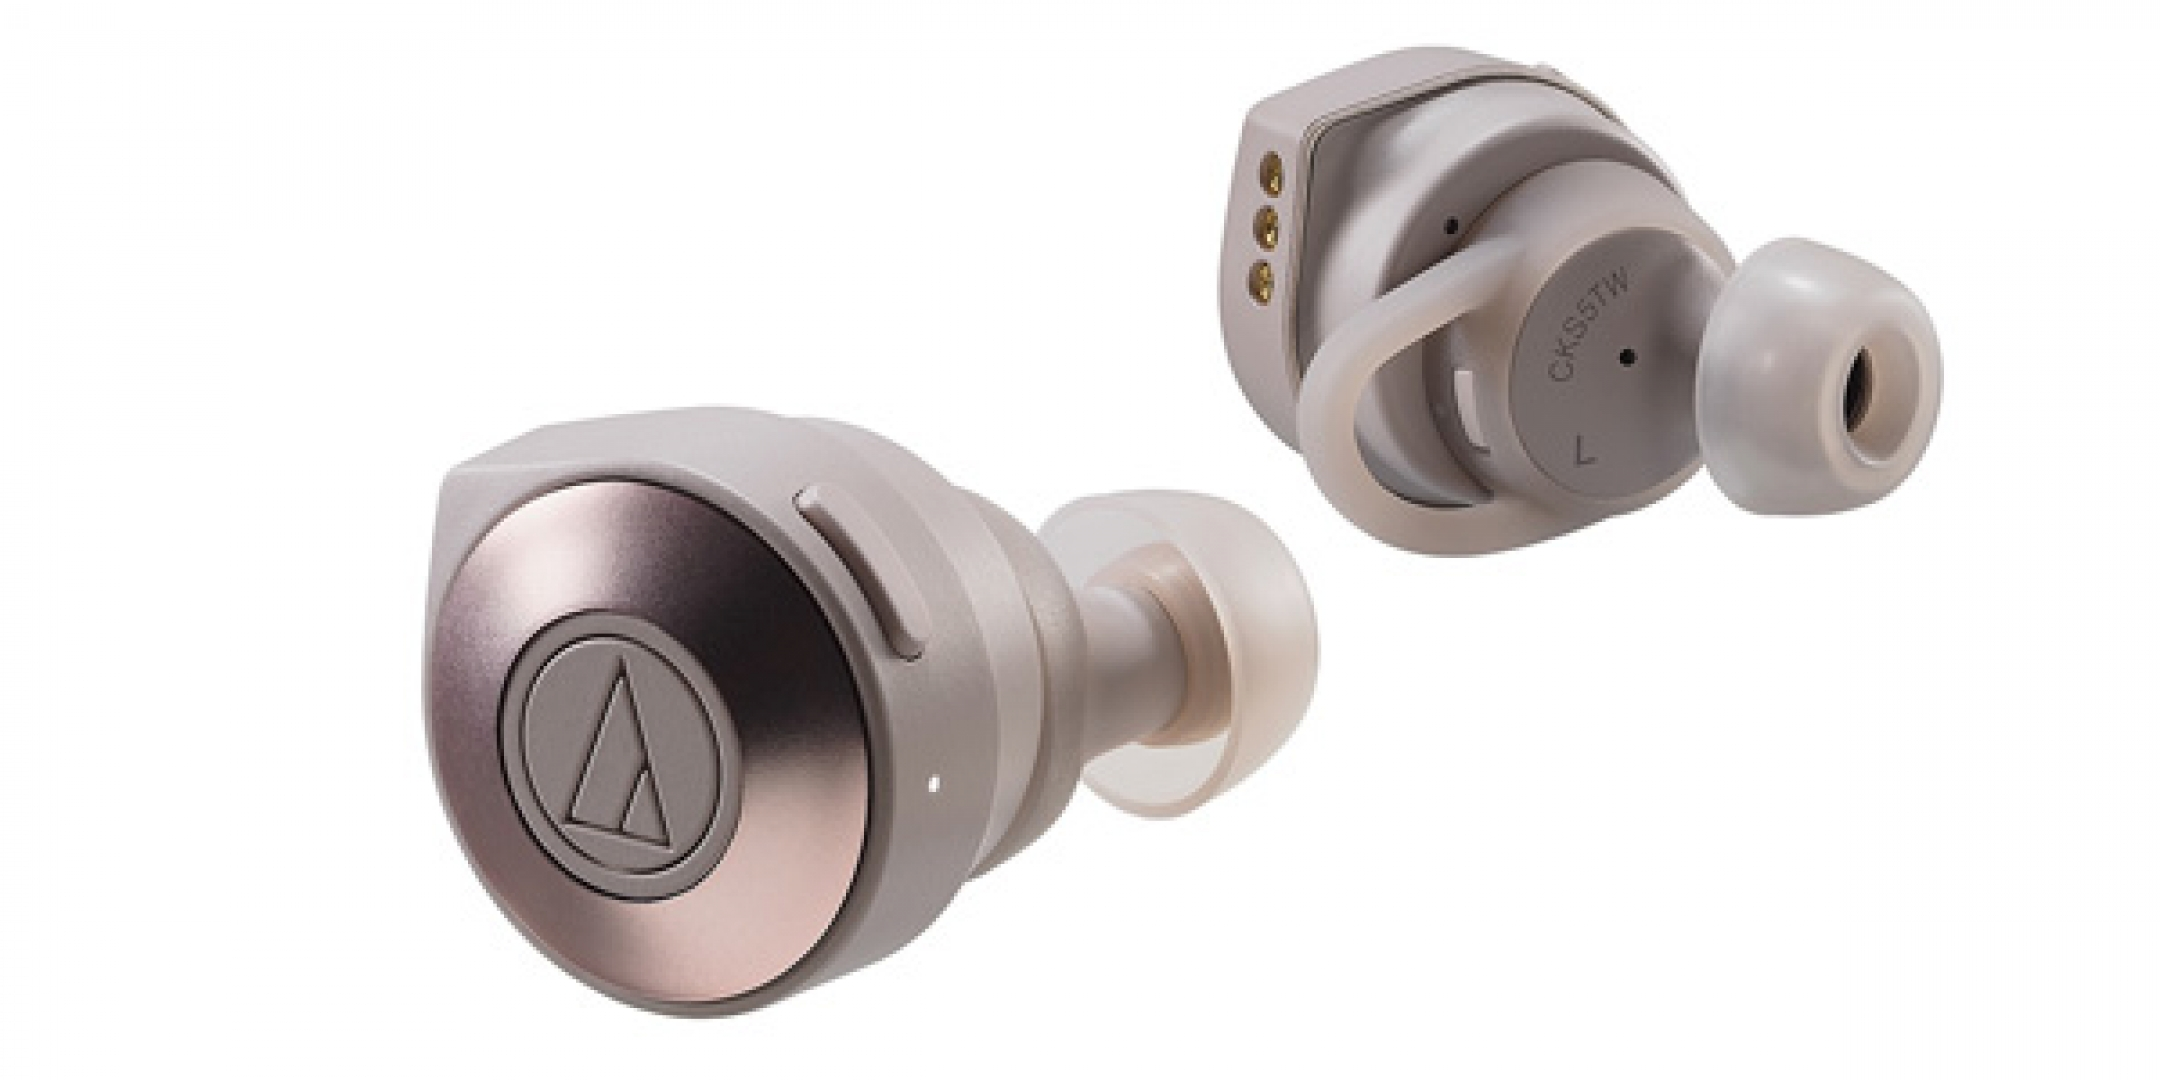 Tai nghe True Wireless Audio Technica ATH-CKS5TW